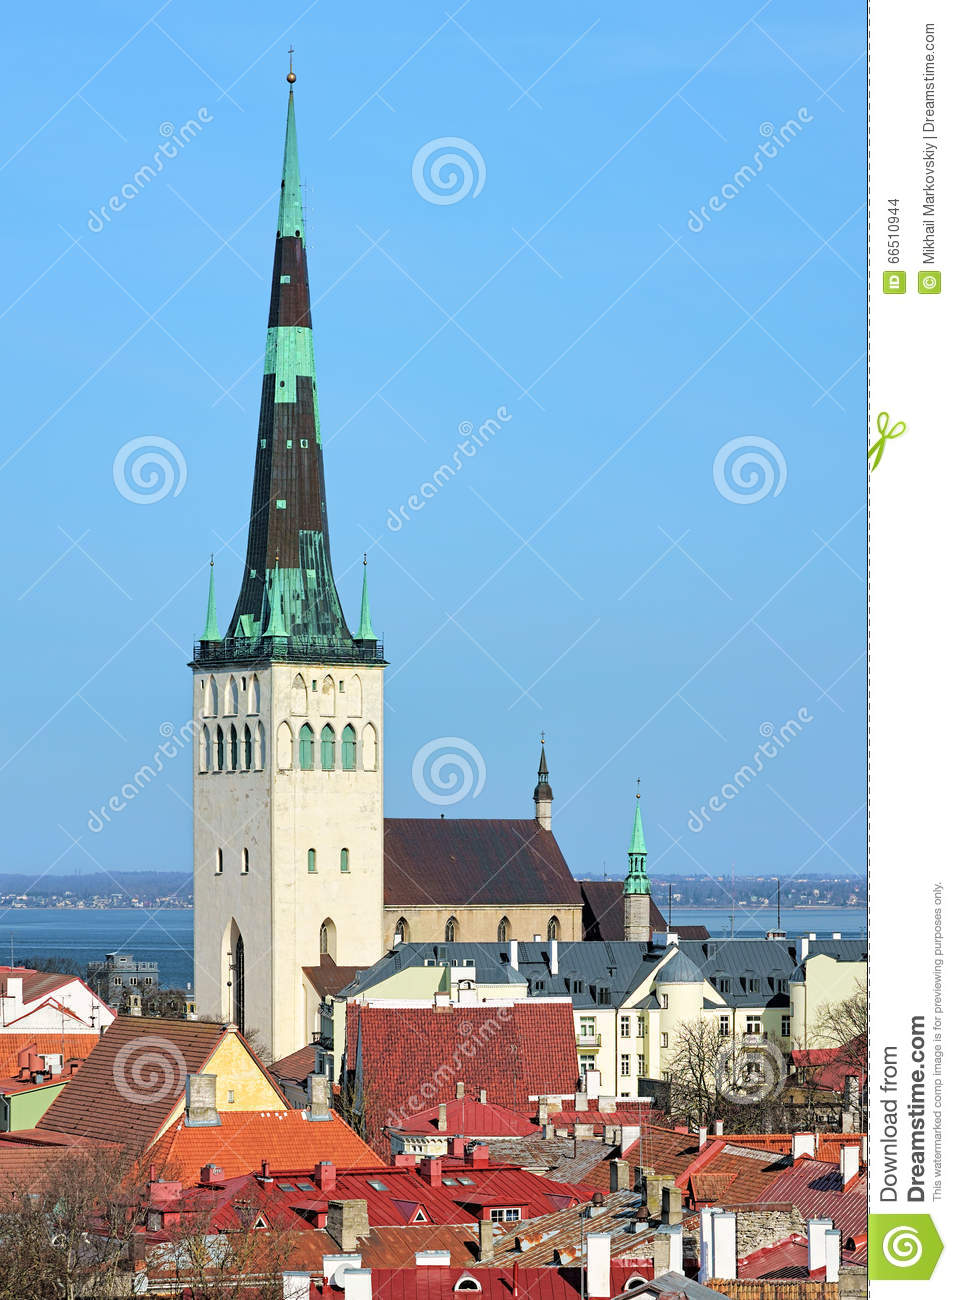 View Of The St. Olaf's Church In The Tallinn Old Town, Estonia.